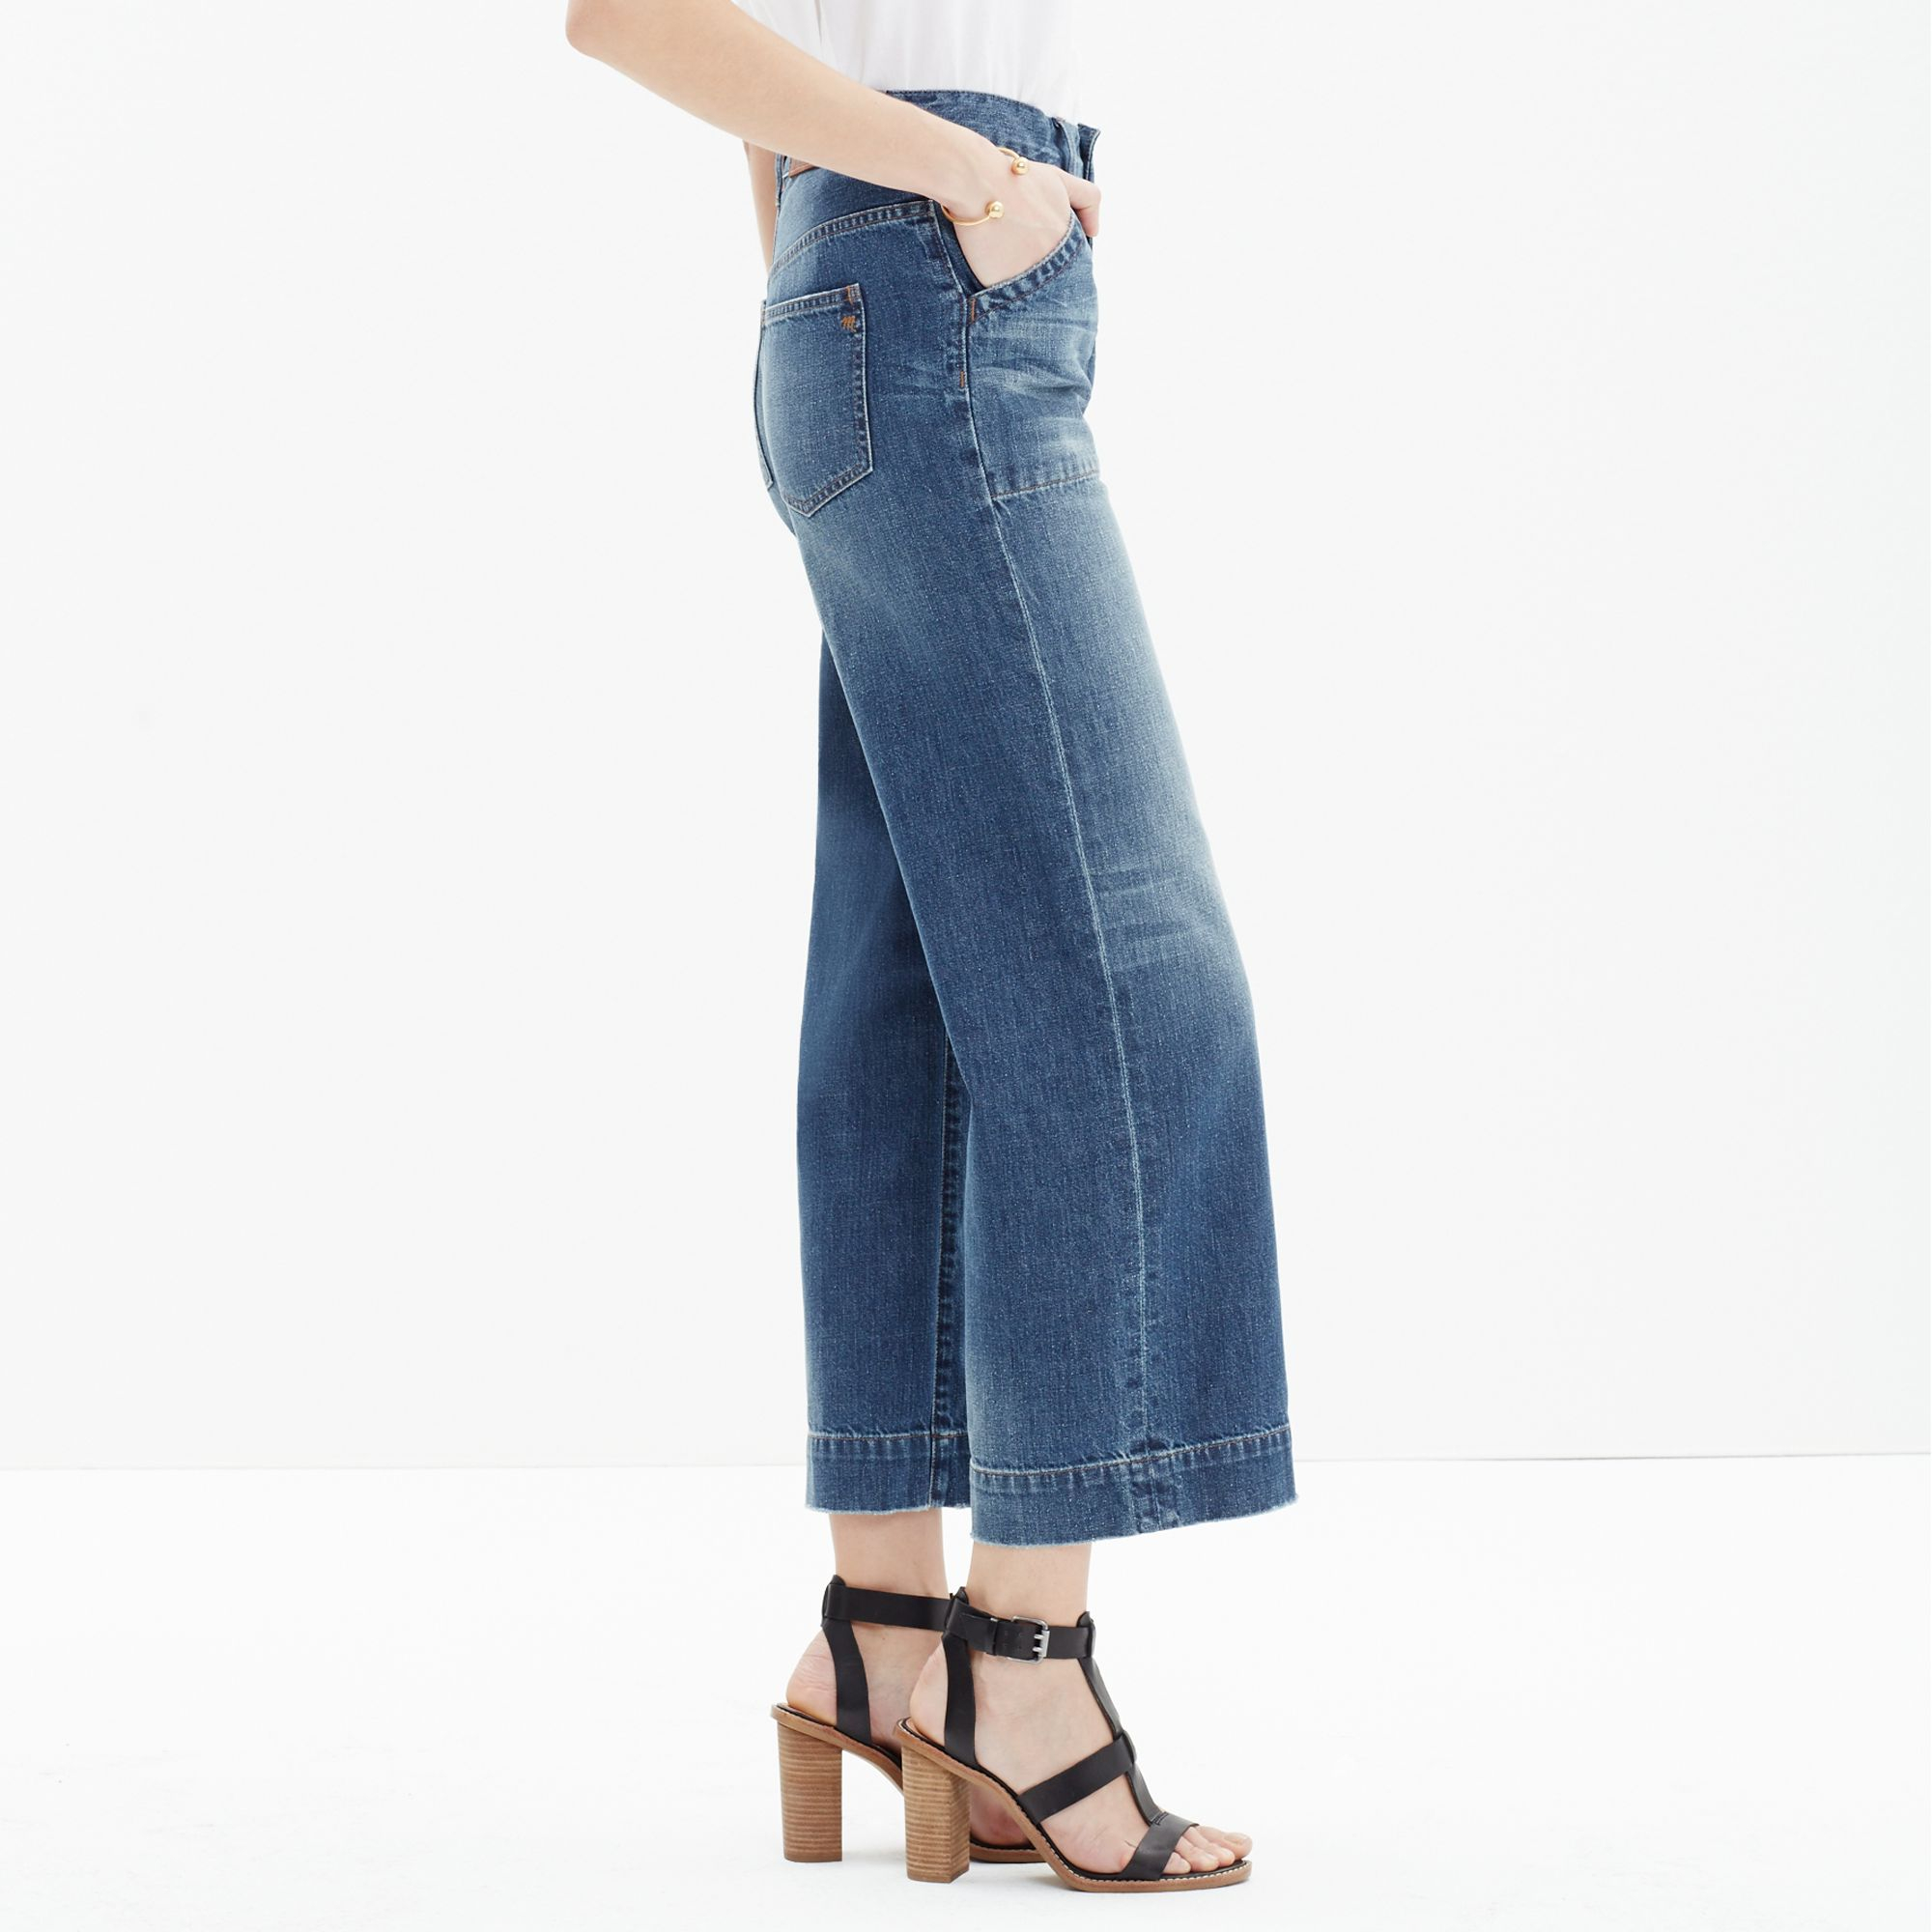 8ed000e46a5b8 Lyst - Madewell Wide-leg Crop Jeans in Blue